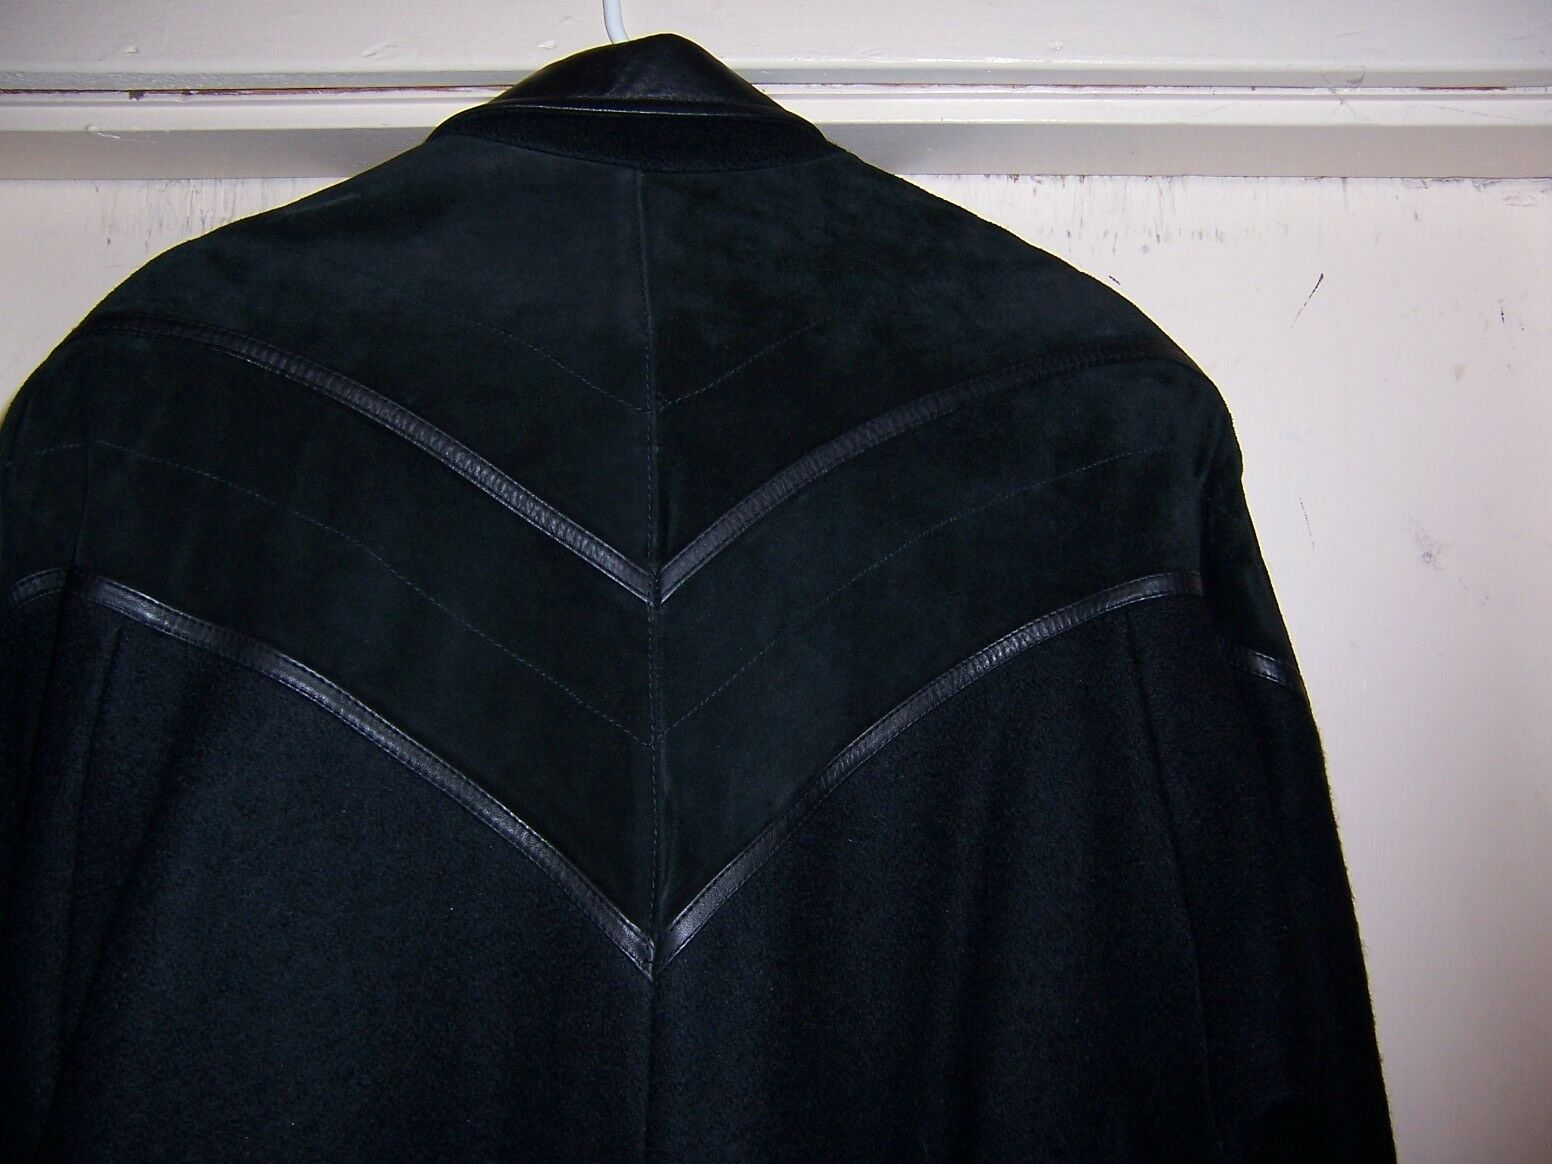 WOMENS DAVID BENJAMIN WOOL LEATHER OVERCOAT EXCELLENT ACROSS ACROSS ACROSS CHEST 26 INCHES XL ad7d10